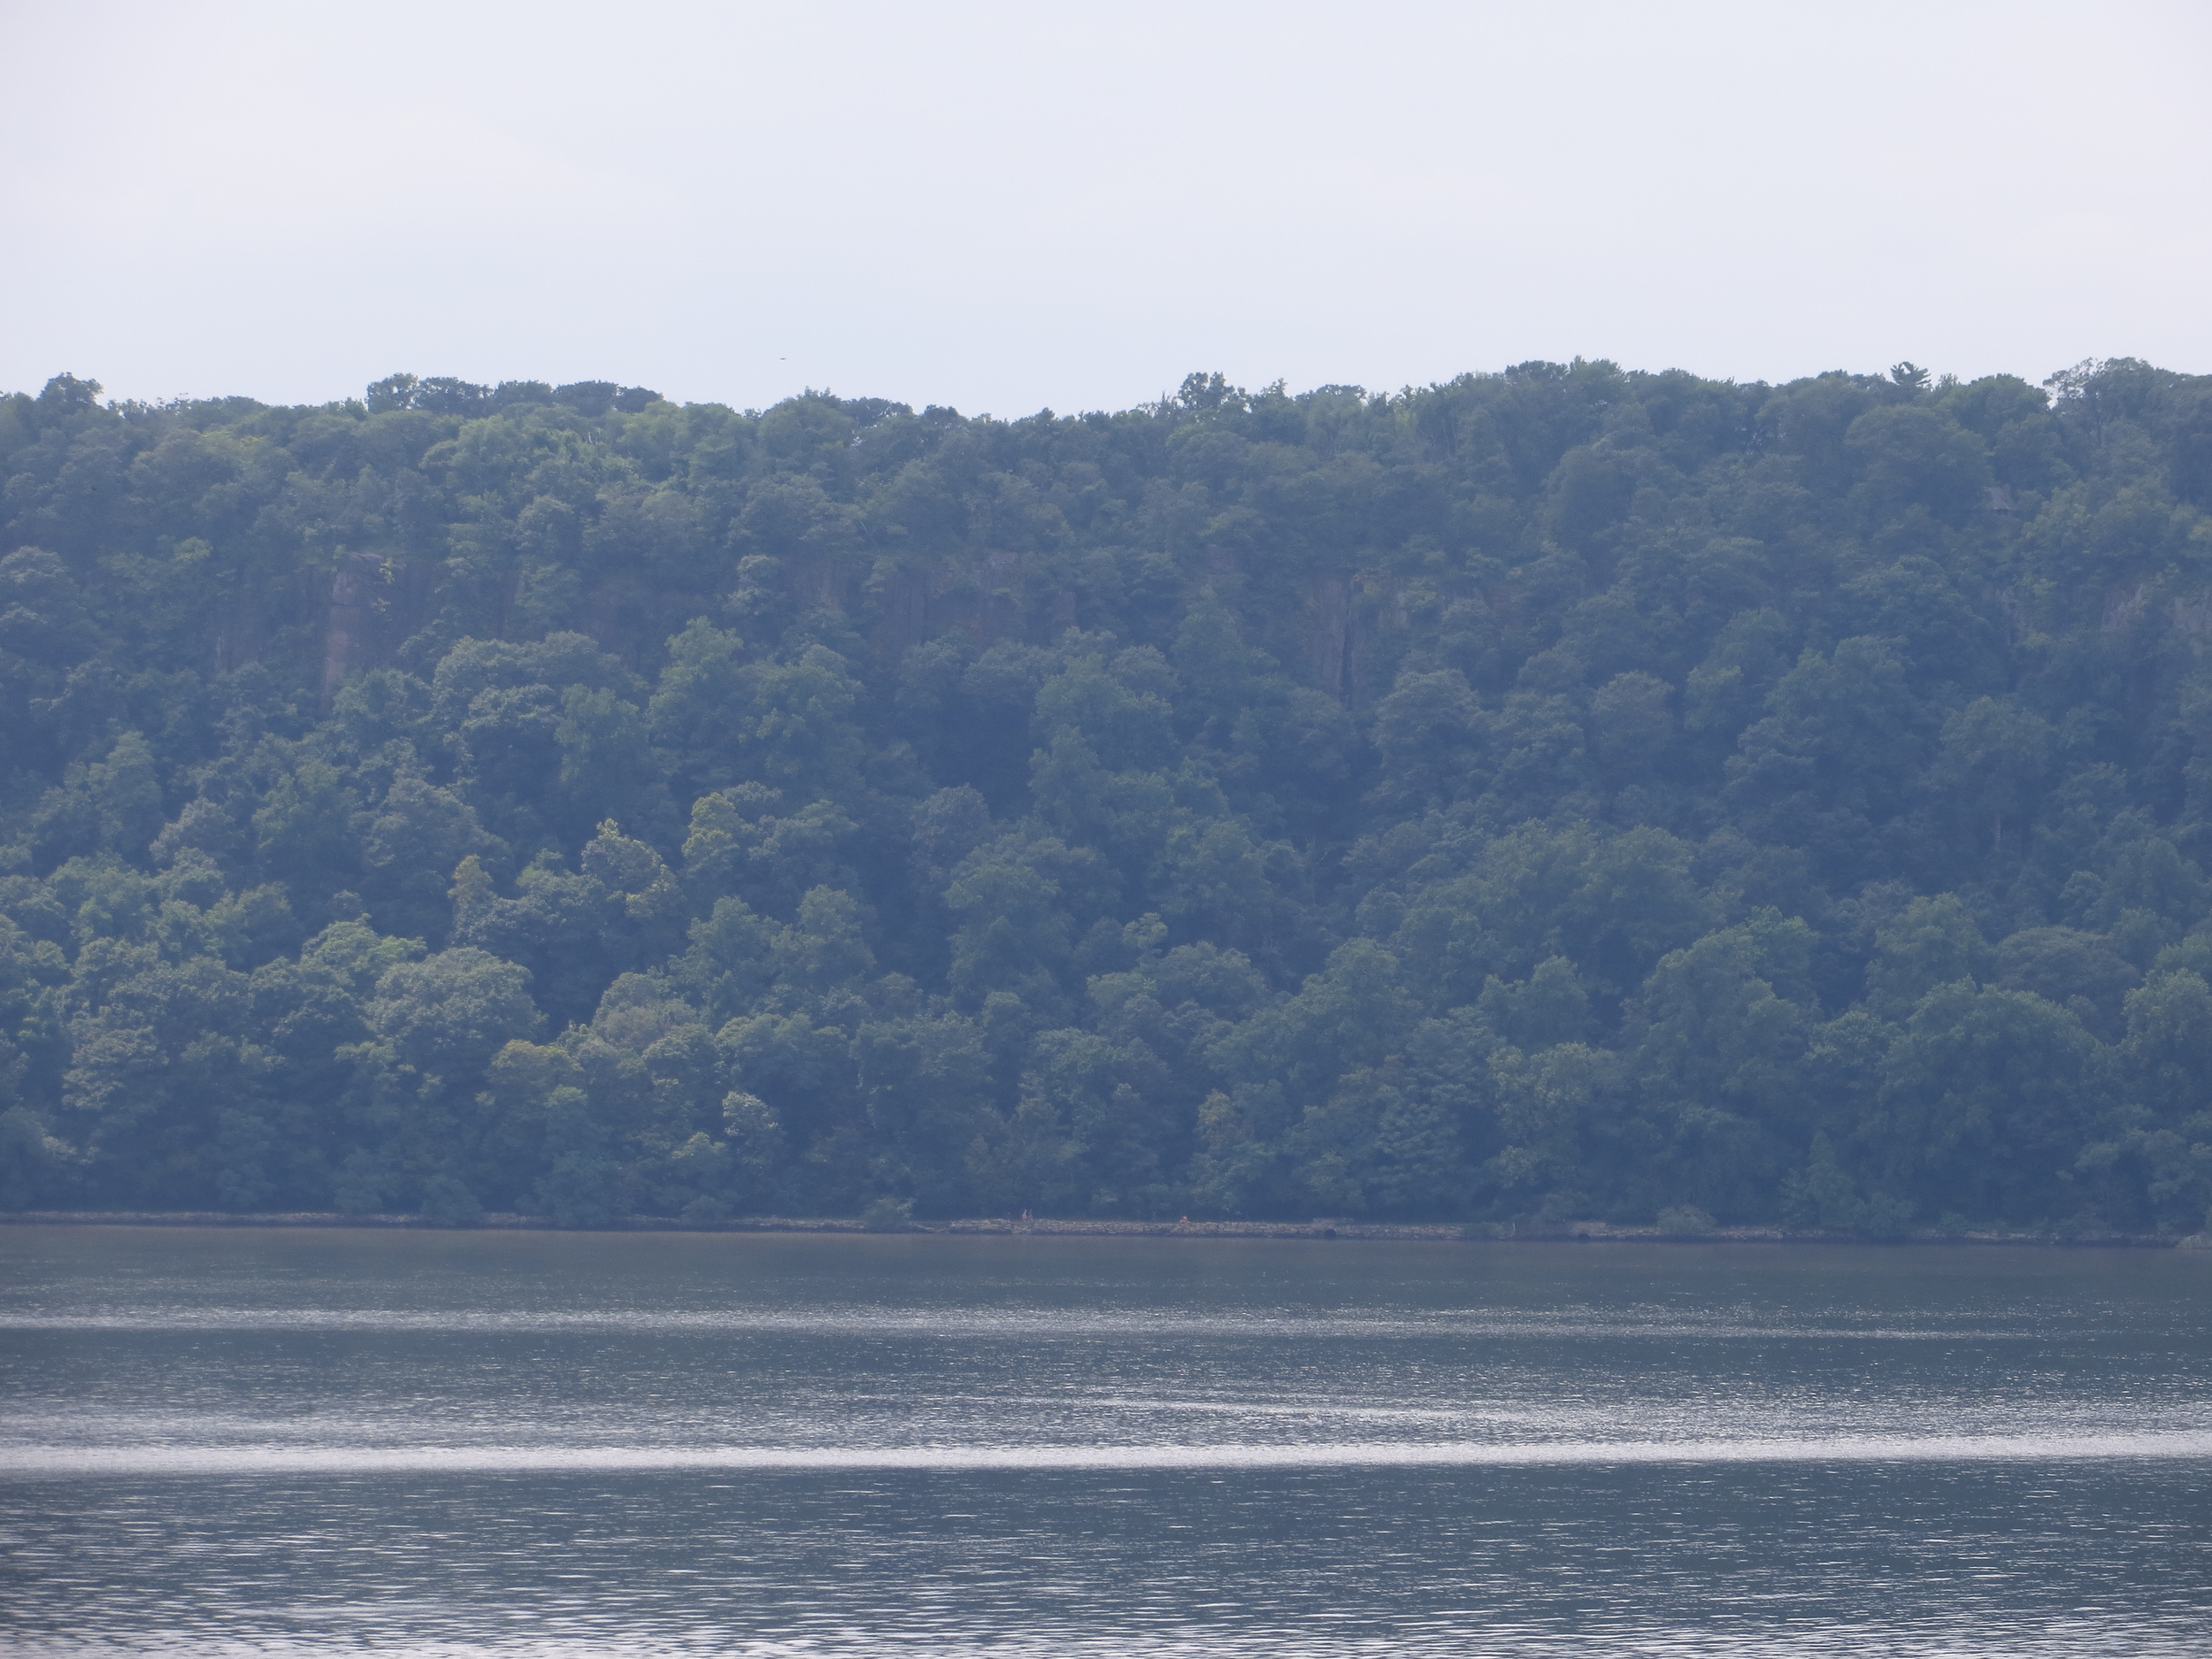 The Palisades across the Hudson